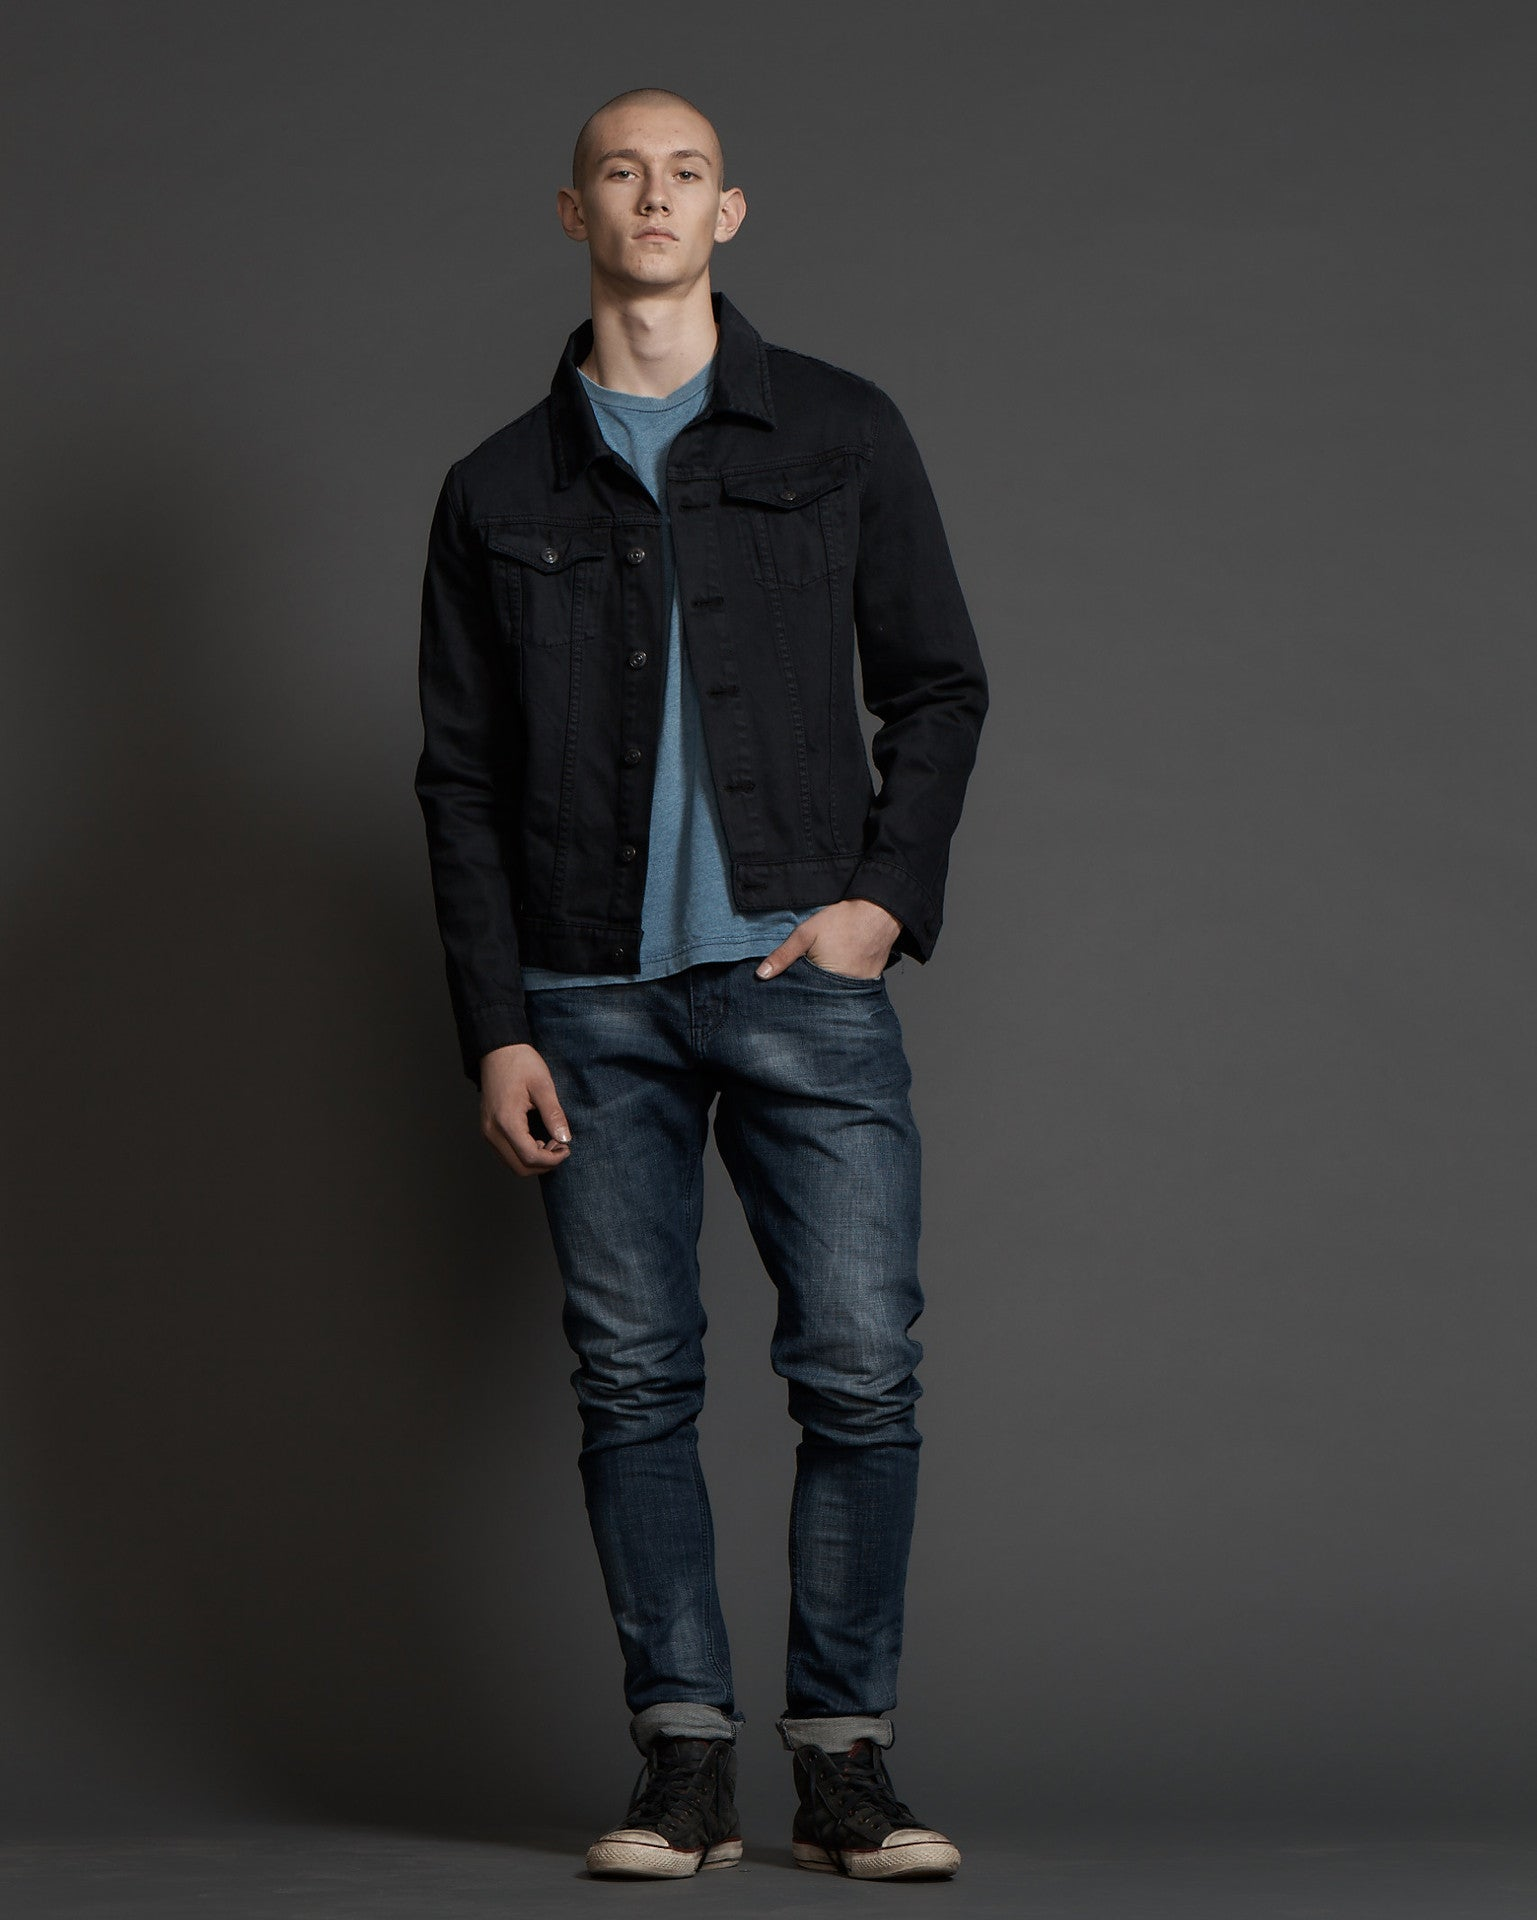 #1G12M Unisex Jacket Wash Black - denimcolab